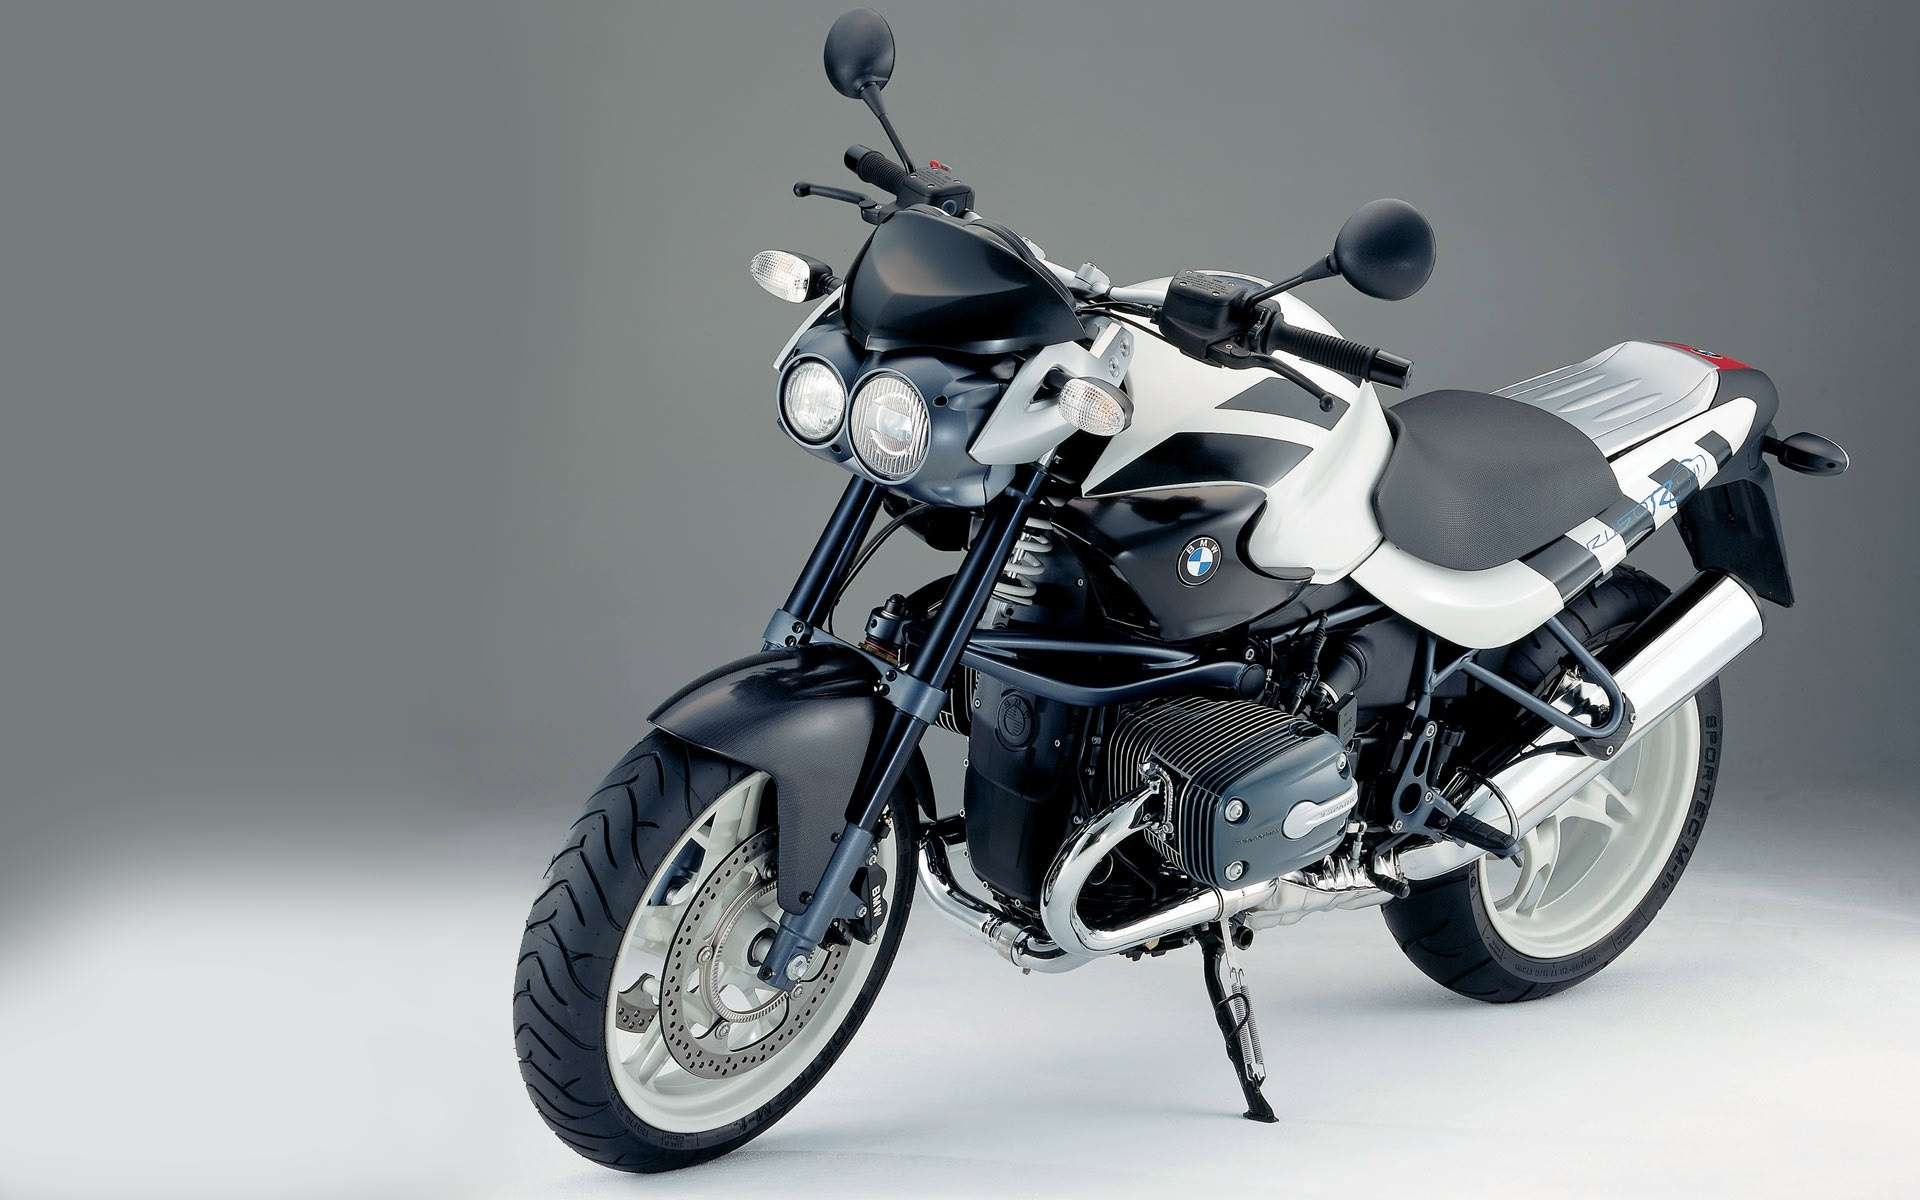 Bmw Moto Pictures Wallpapers : Hd Wallpapers